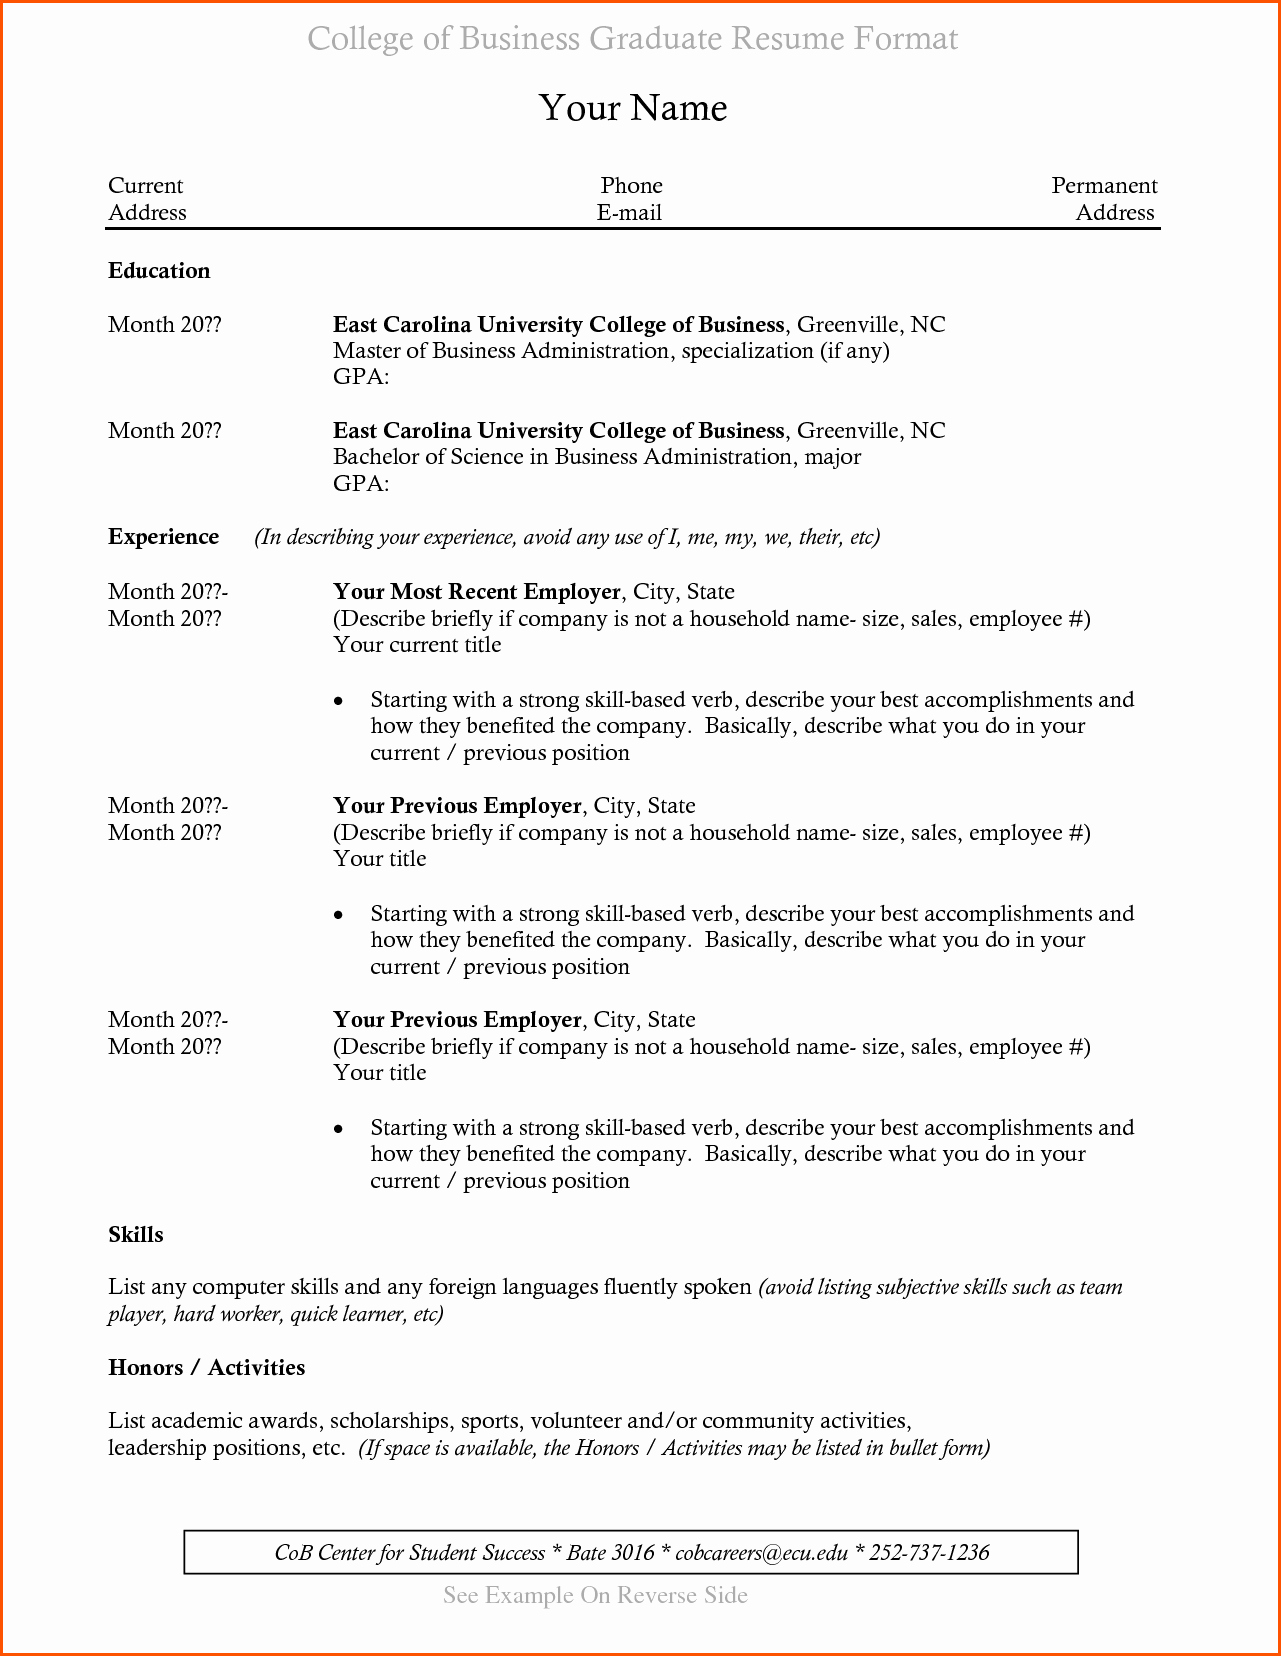 Resumes for Recent College Graduates New Resumes for College Graduates with No Experience